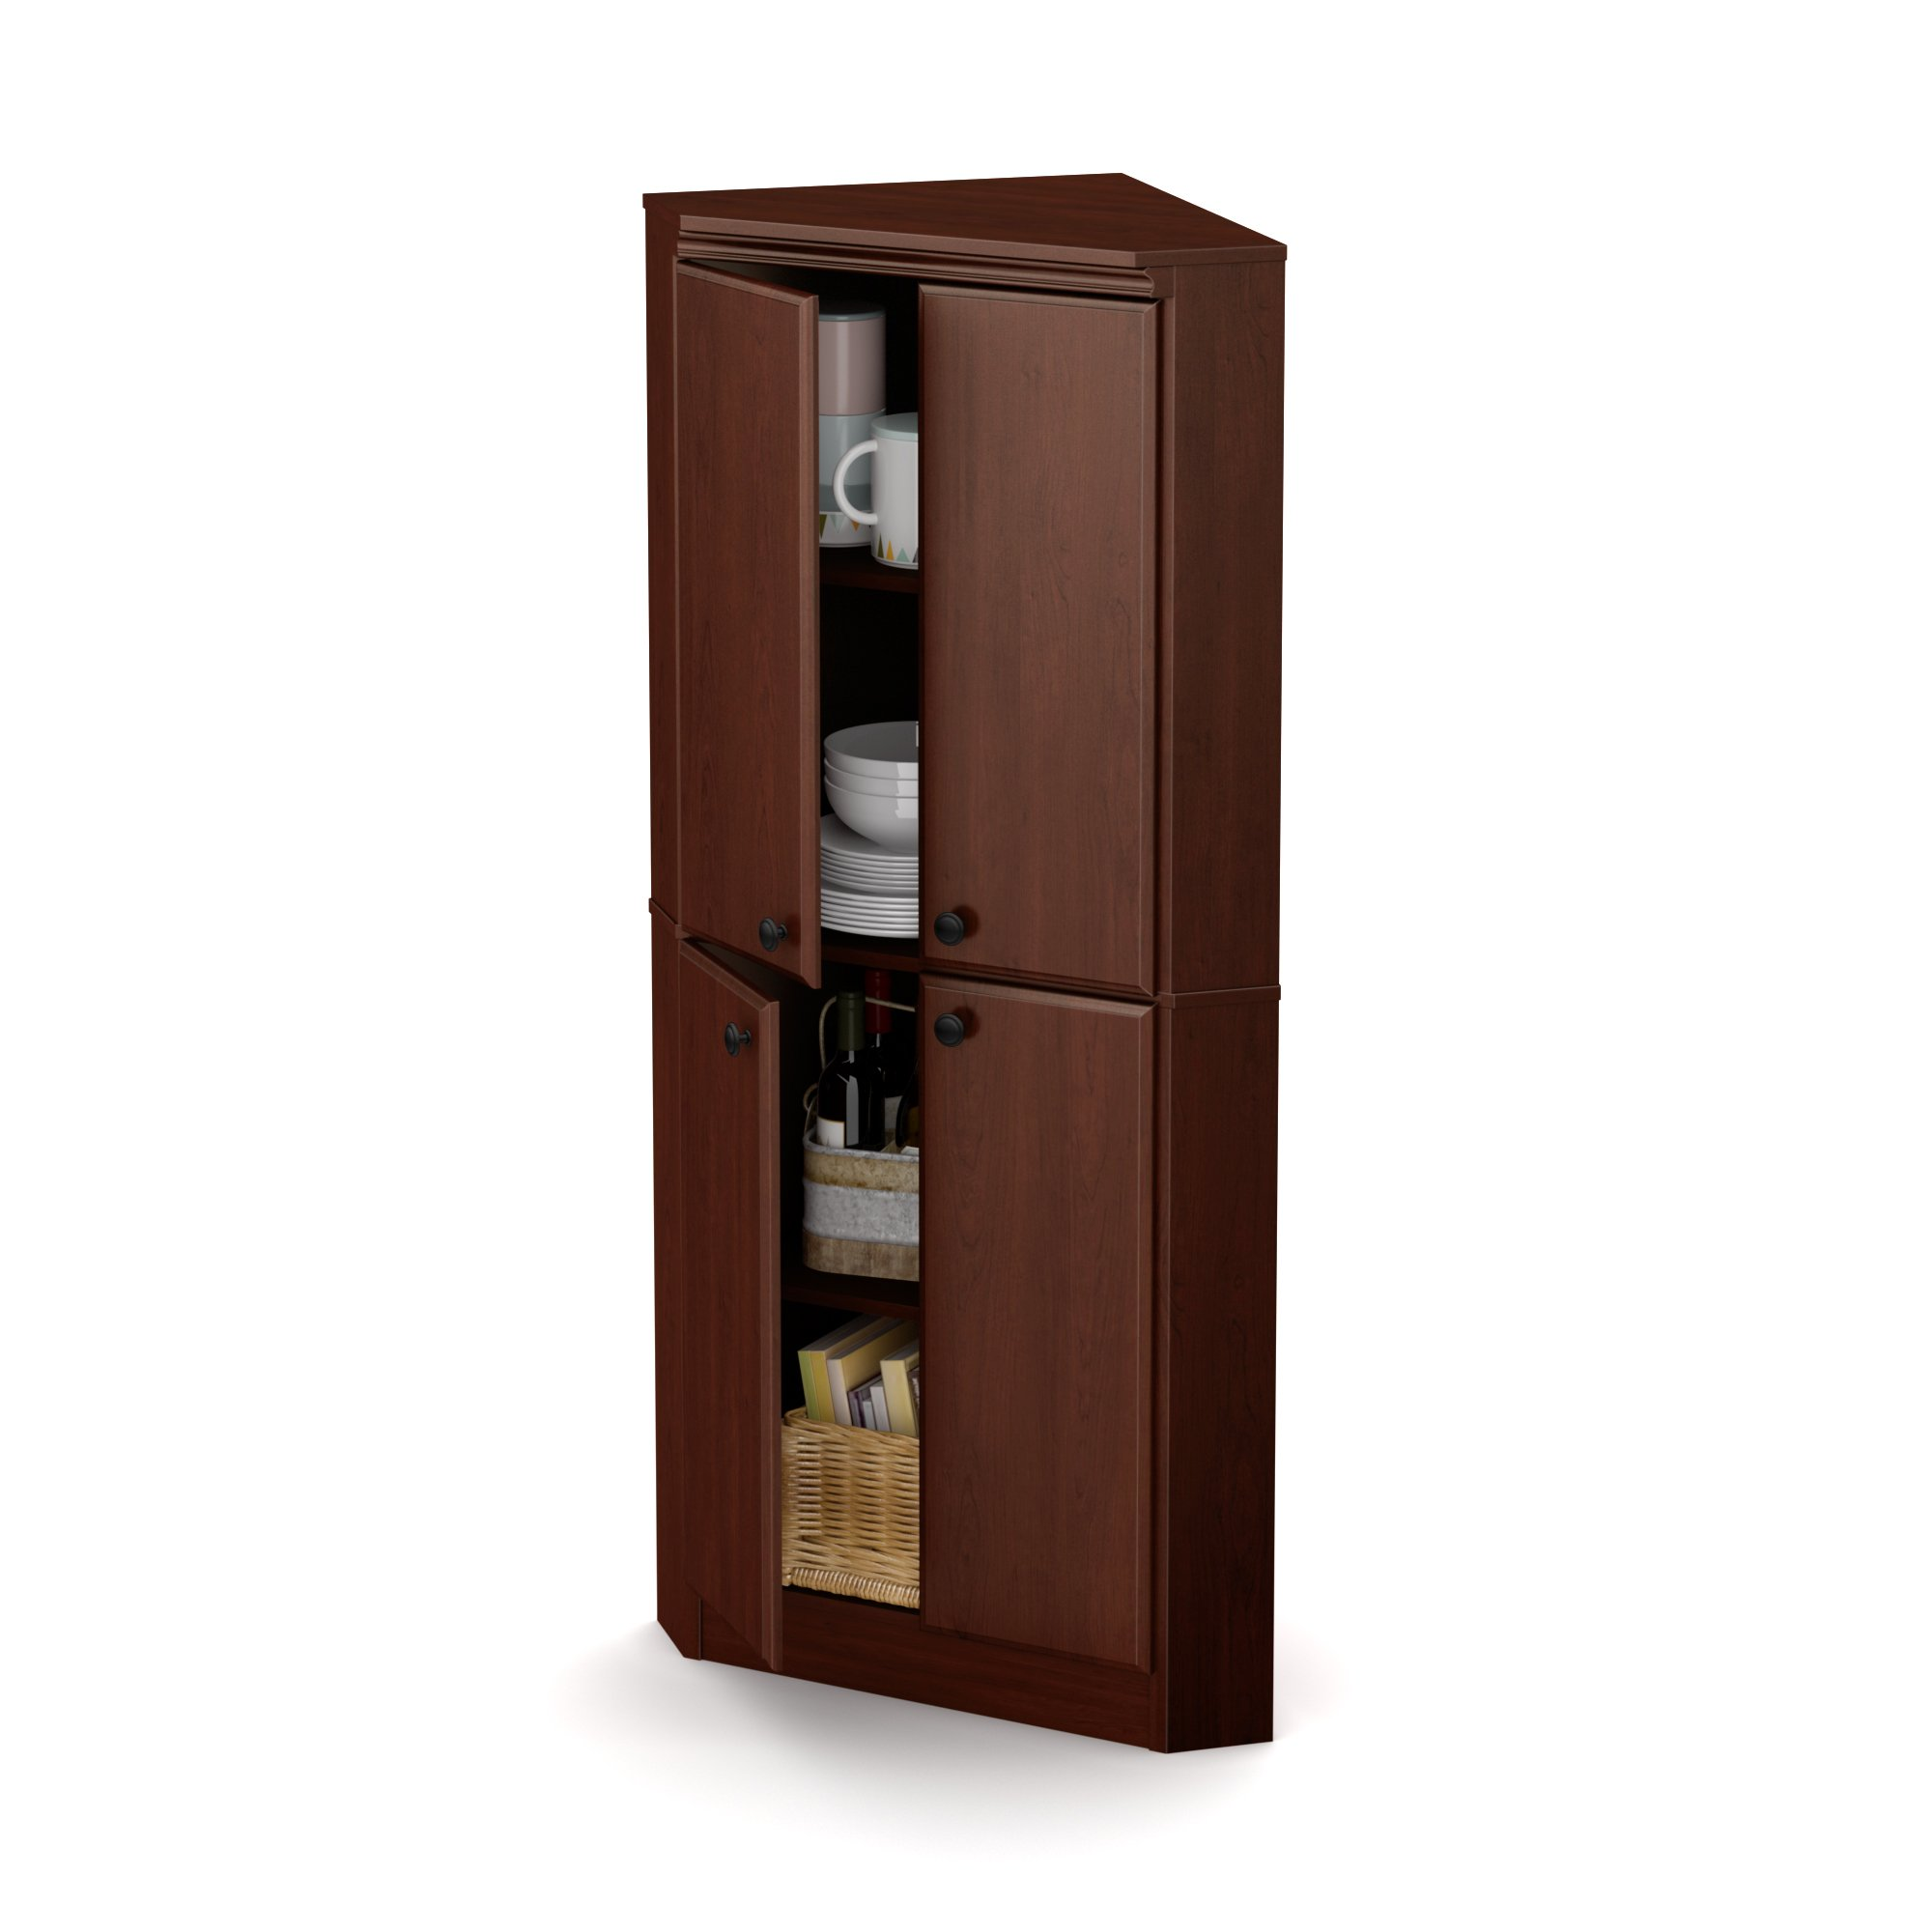 South Shore 4-Door Corner Armoire for Small Space with Adjustable Shelves, Royal Cherry by South Shore (Image #2)